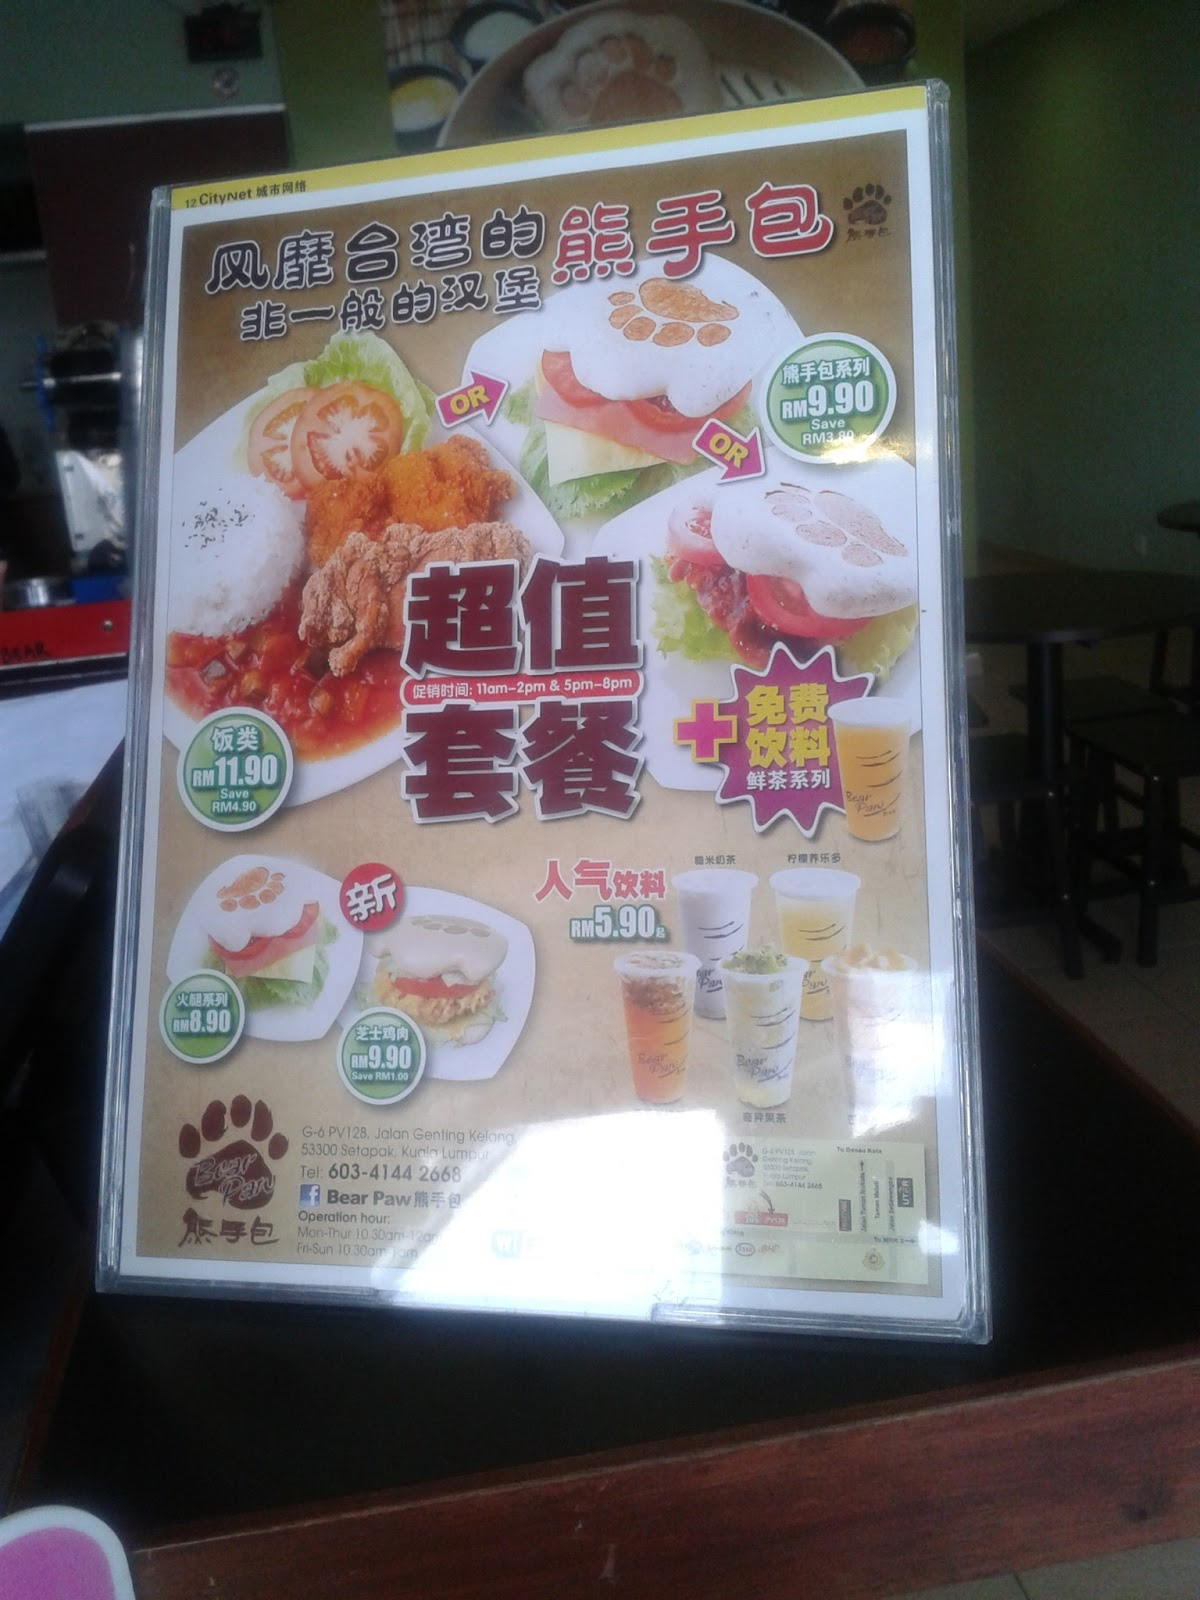 Bear Paw Franchise Bear Paw Café is Provided 4